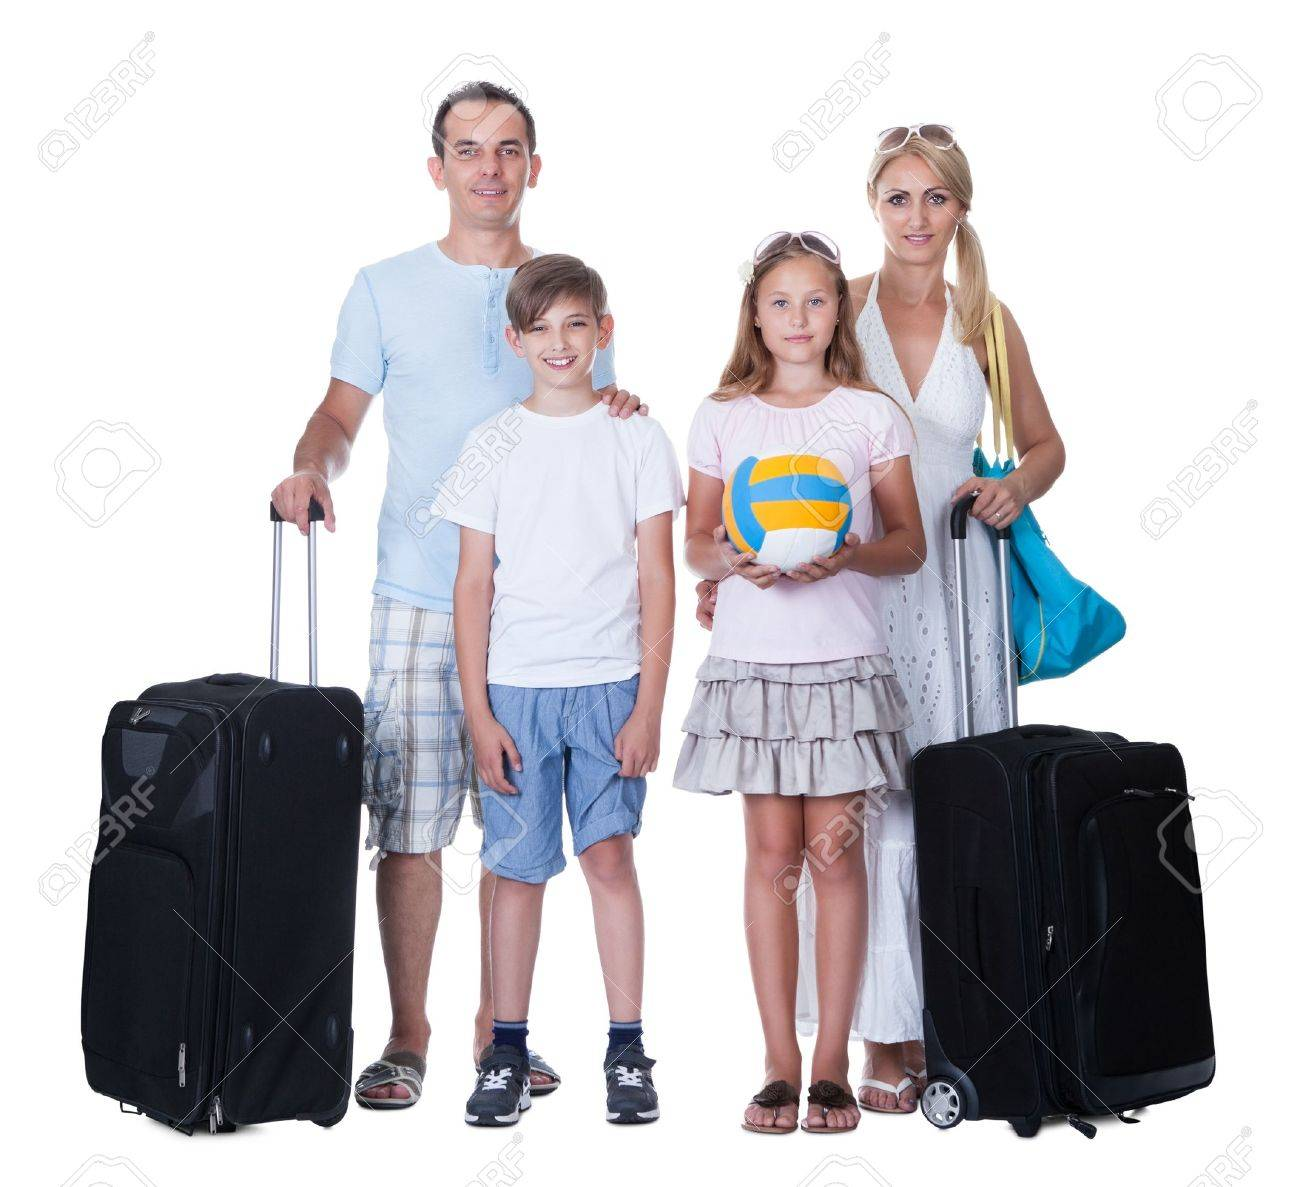 Happy Family With Luggage Going For Vacation Isolated On White Background Stock Photo